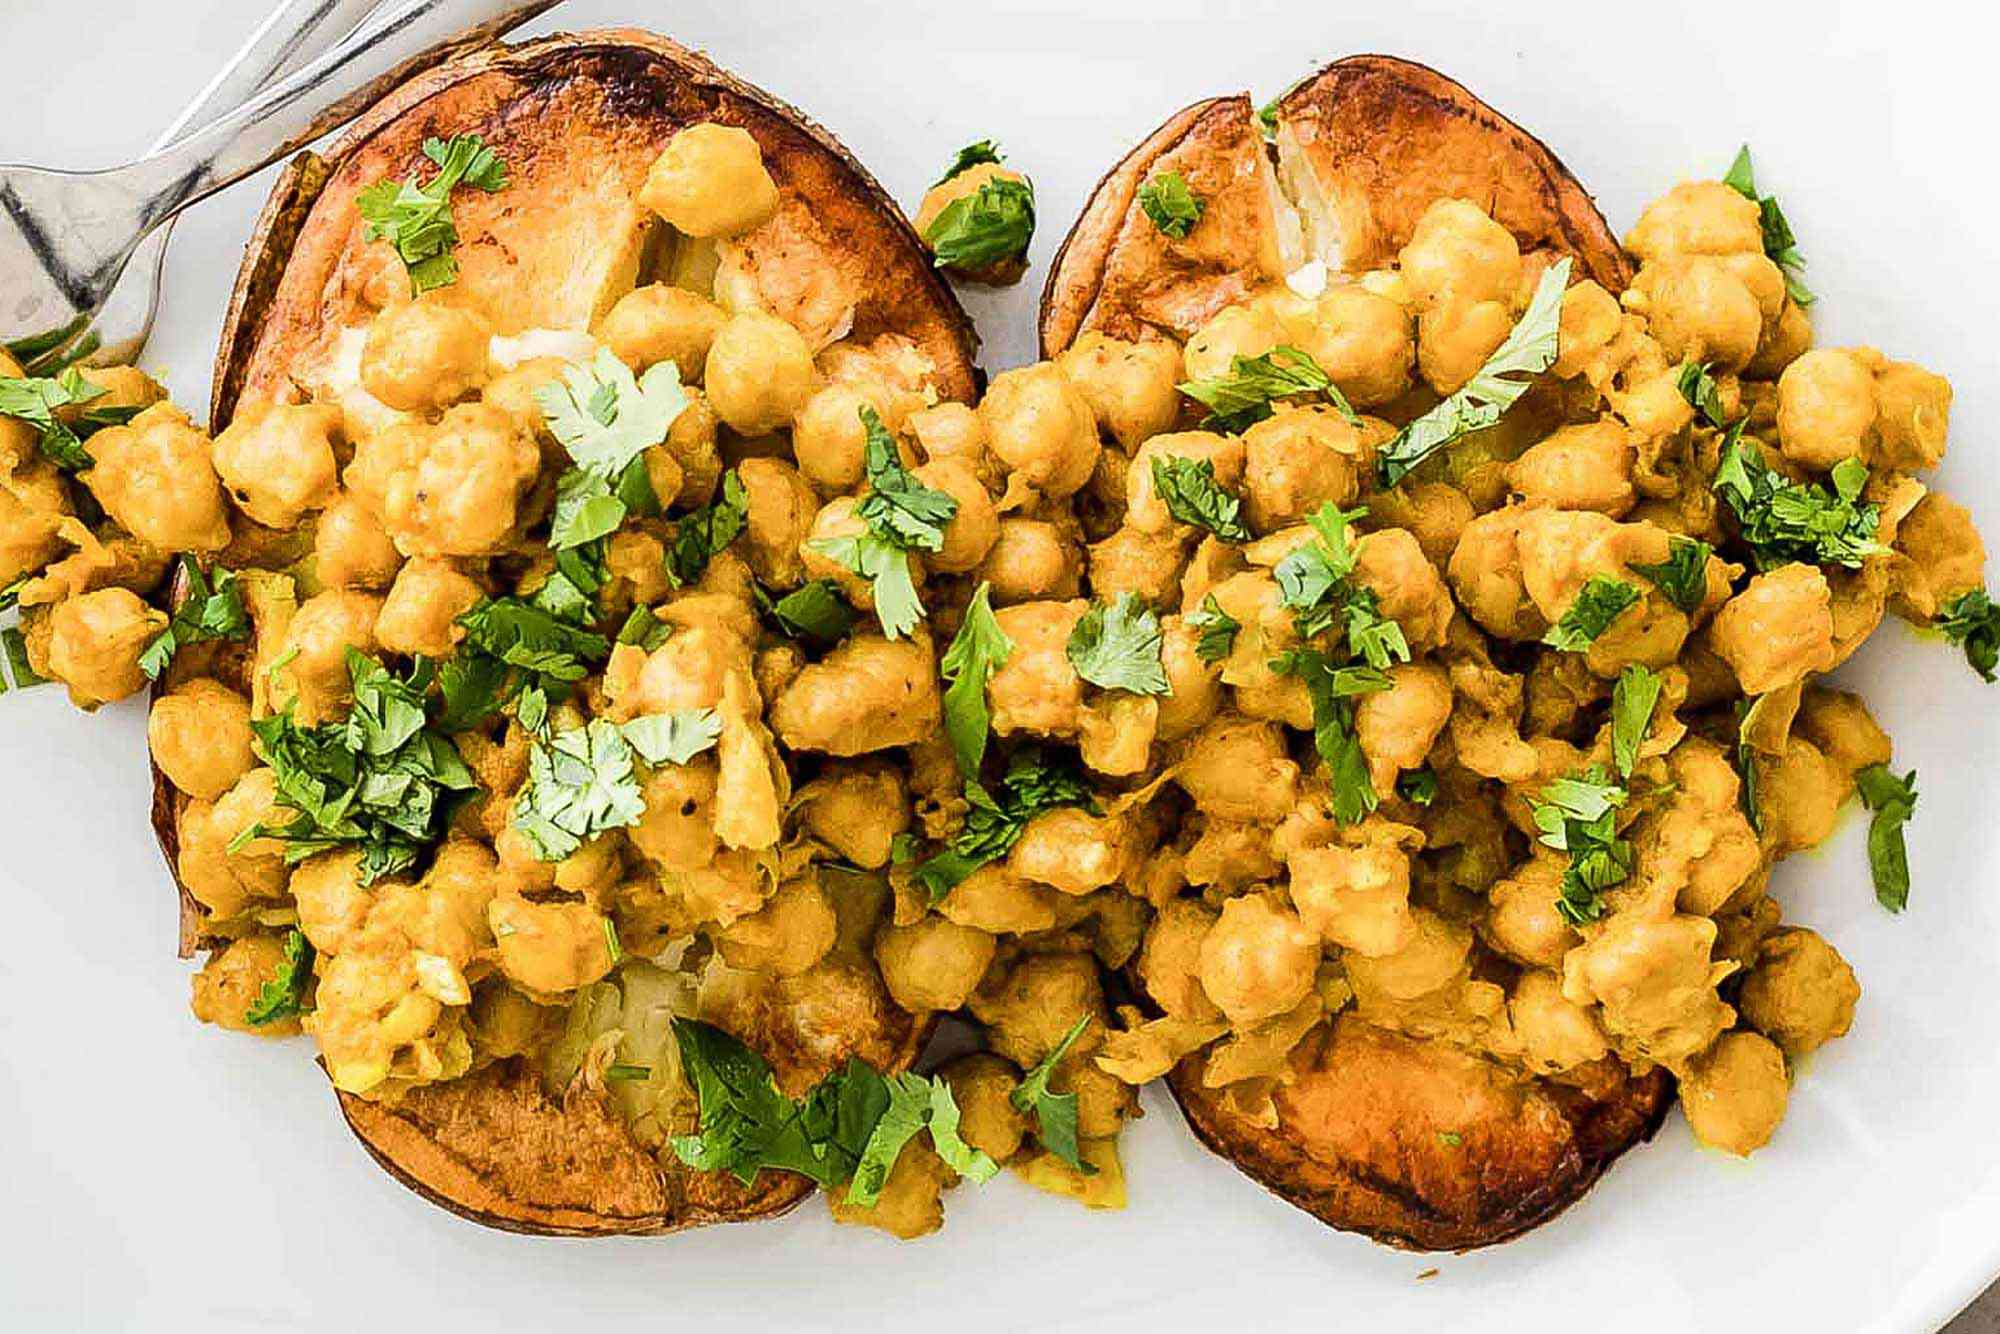 Baked Potatoes with Curry Chickpeas assemble the potatoes